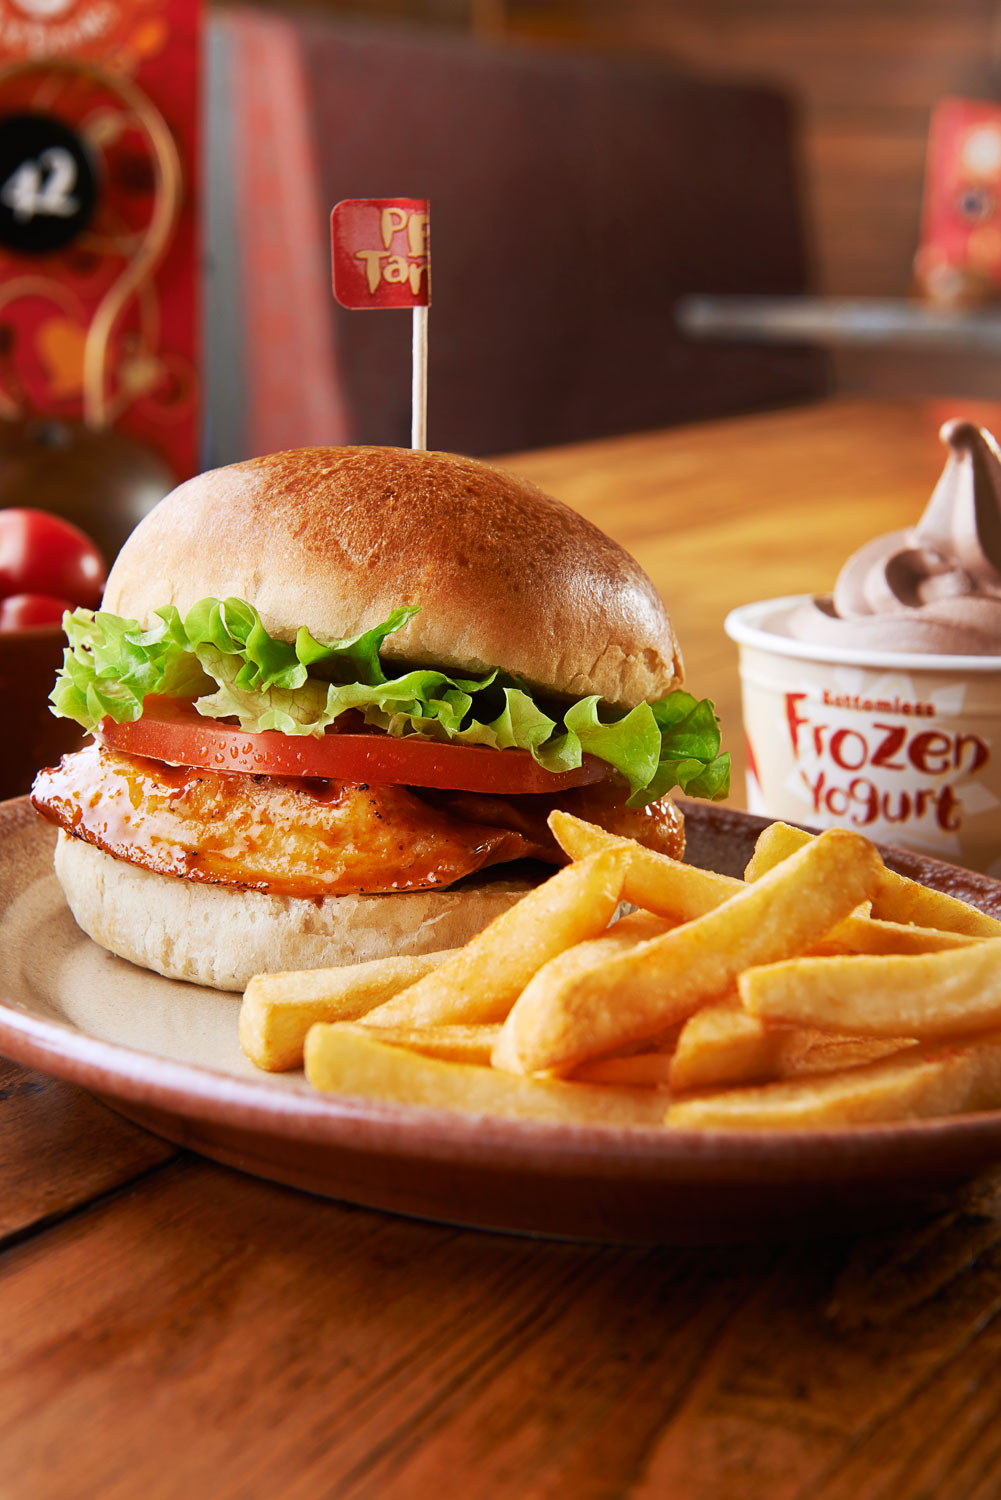 nando's nando burger chicken tomato lettuce chips fries bottomless frozen yoghurt bun nandinos menu booth advertising press pr tabletop food photography food photographer london still life restaurant grilled breast fried tomatoes recipe cookbook andpn